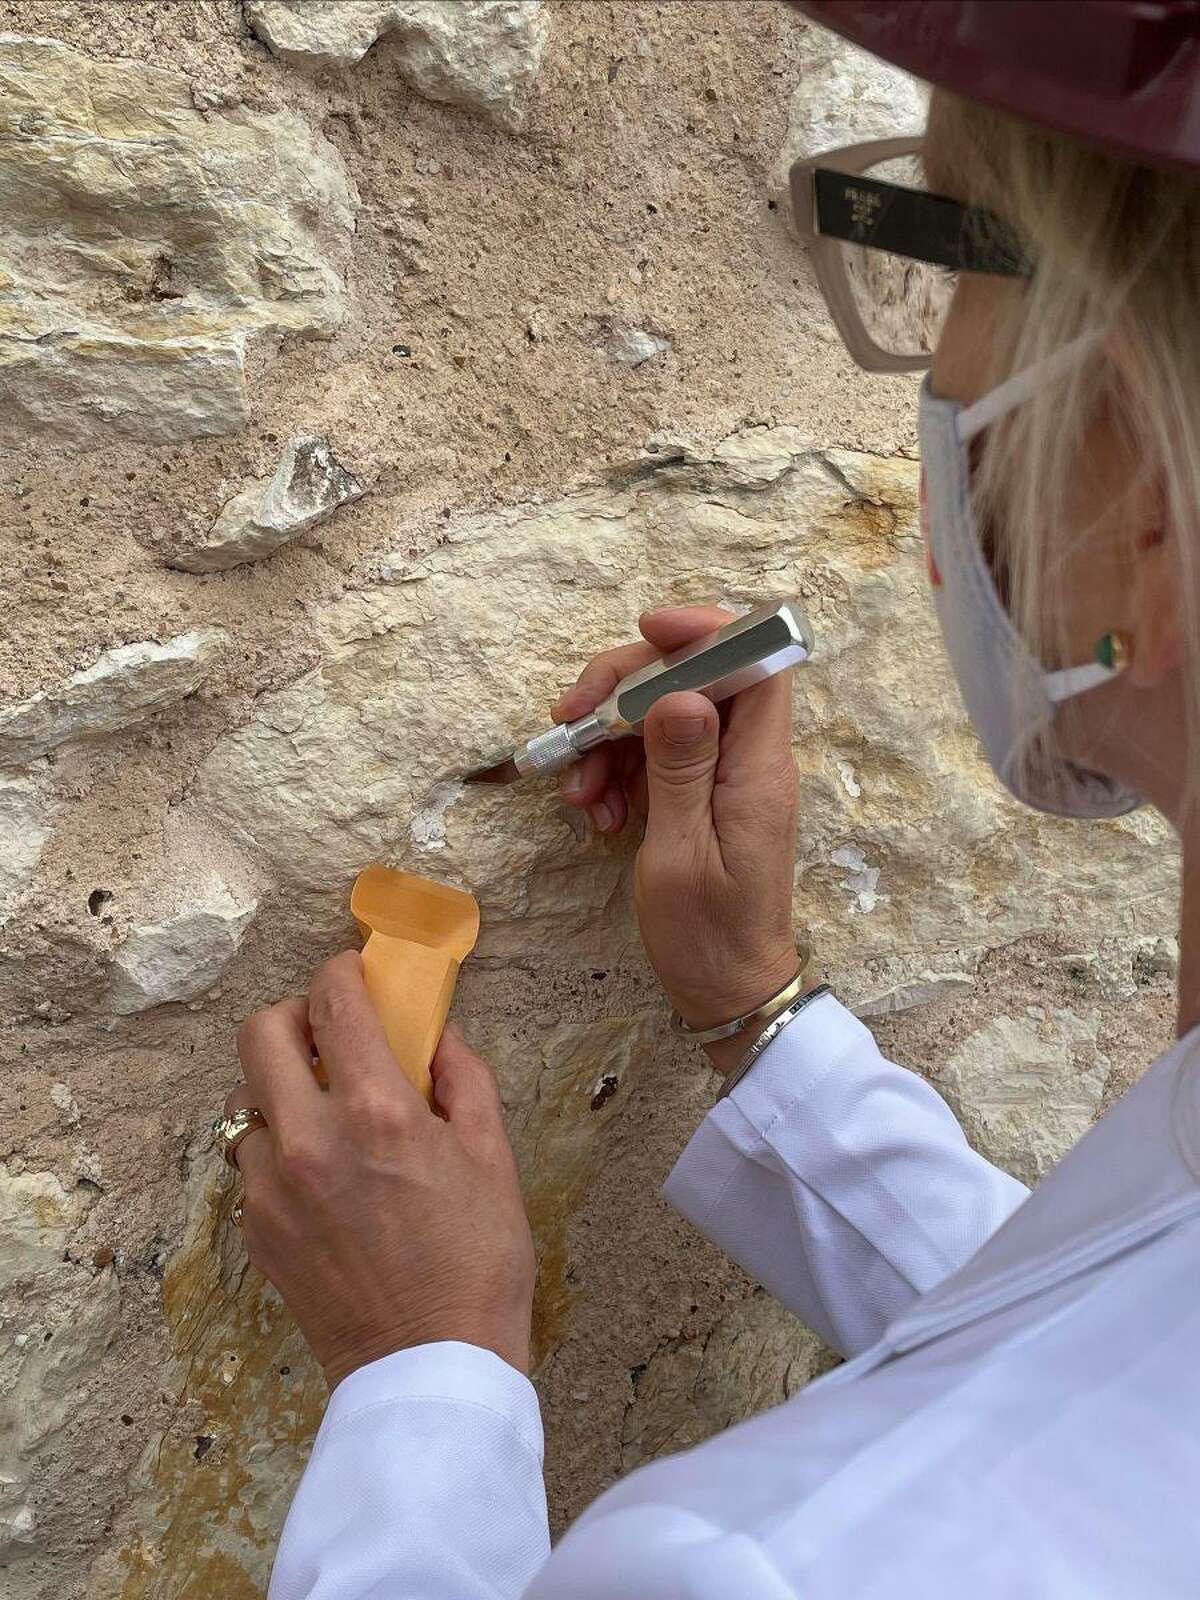 Pamela Jary Rosser, the Alamo's longtime on-site conservator, carefully removes fragments of pigment from the facade of the mission-era church. The samples will be tested to identify their age and help determine whether the church might have been painted in the 1700s, as was the custom in indigenous mission communities.